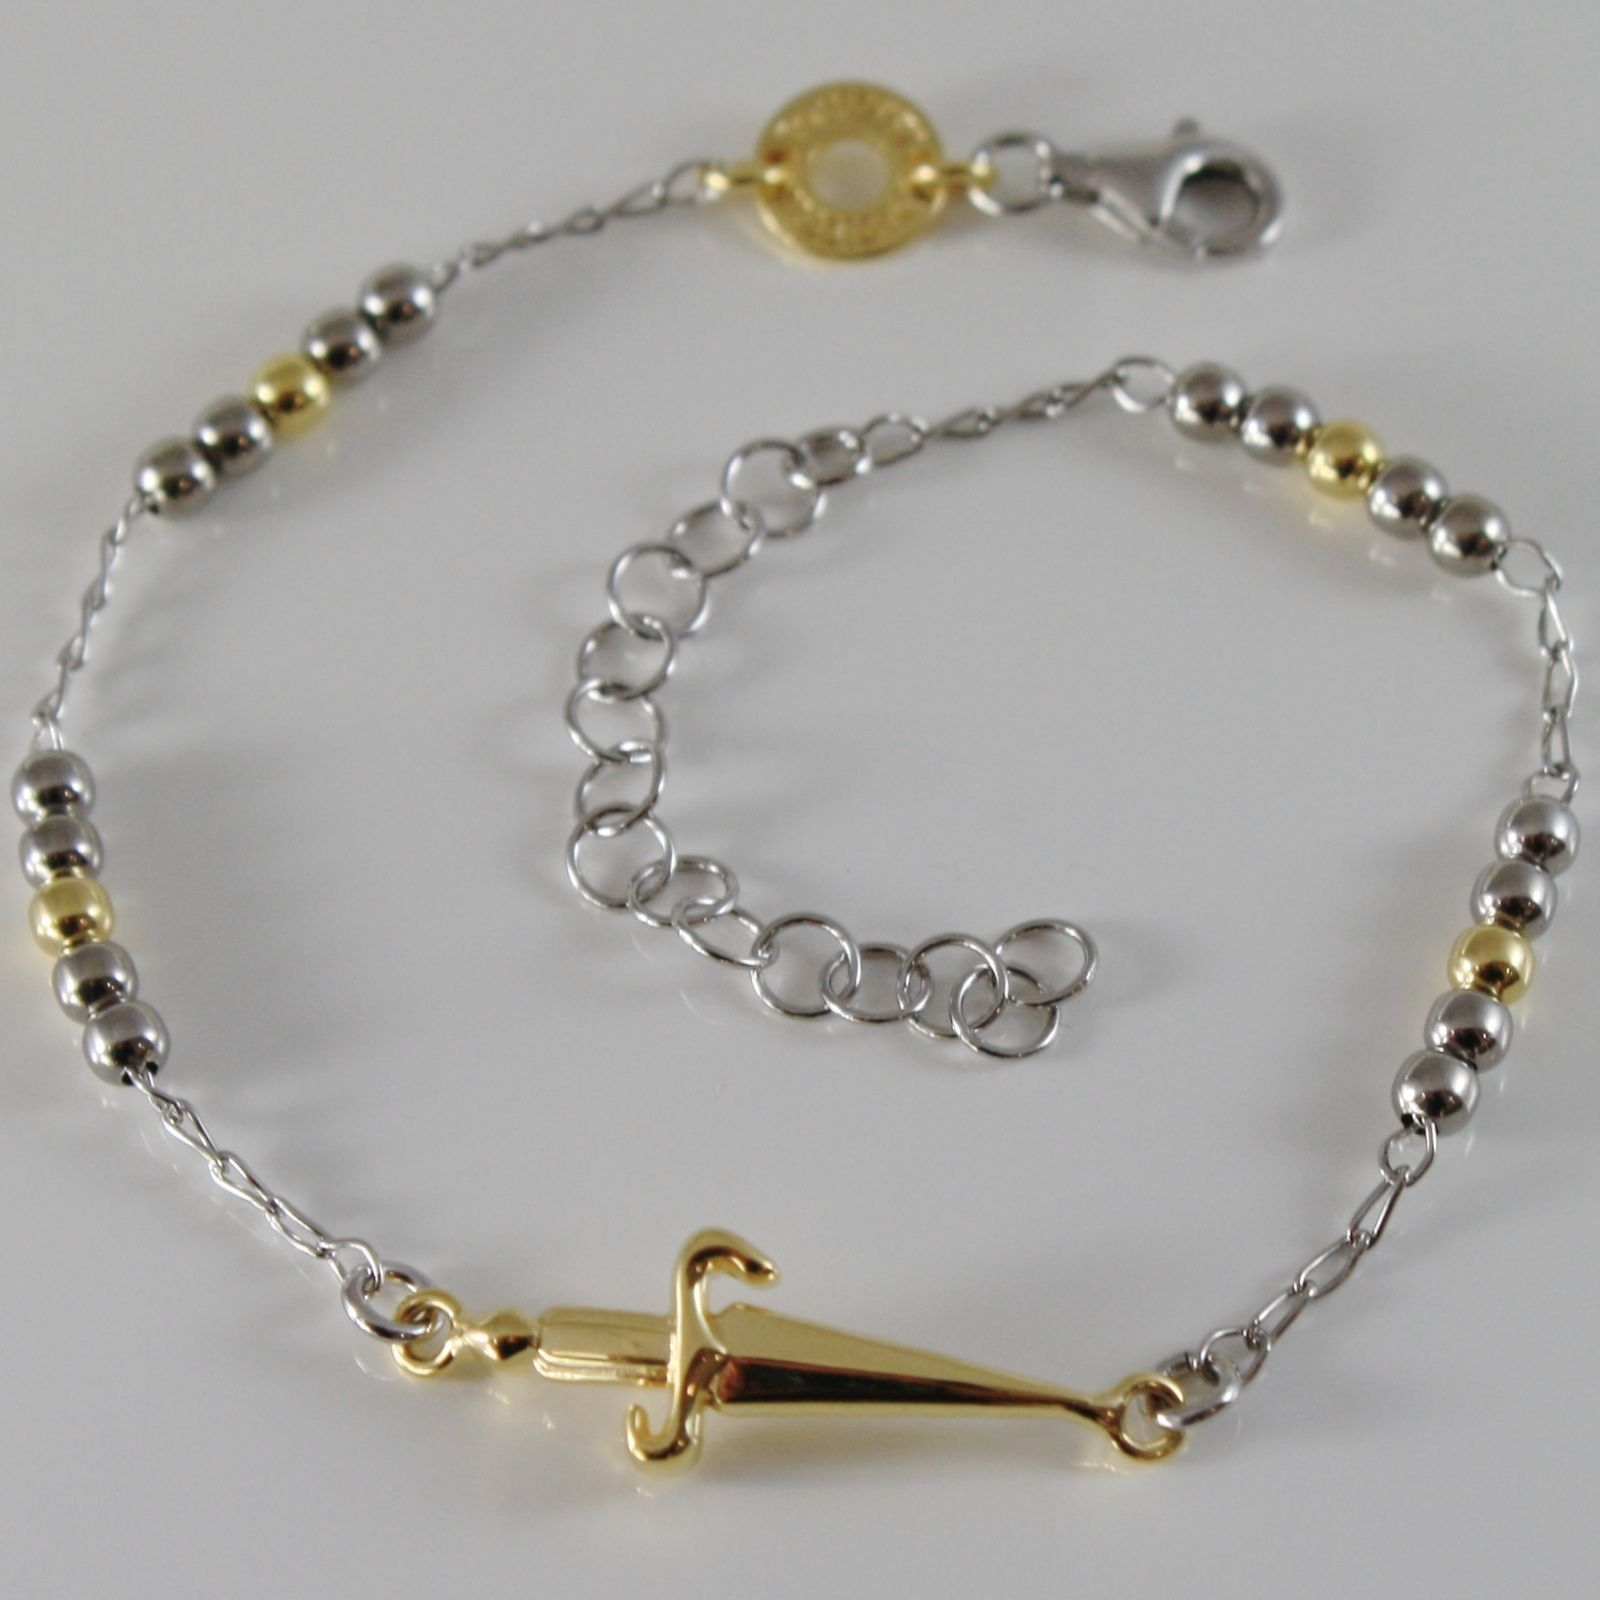 925 STERLING SILVER BRACELET BY CESARE PACIOTTI, GOLD SWORD, BALLS, 8.3 INCHES